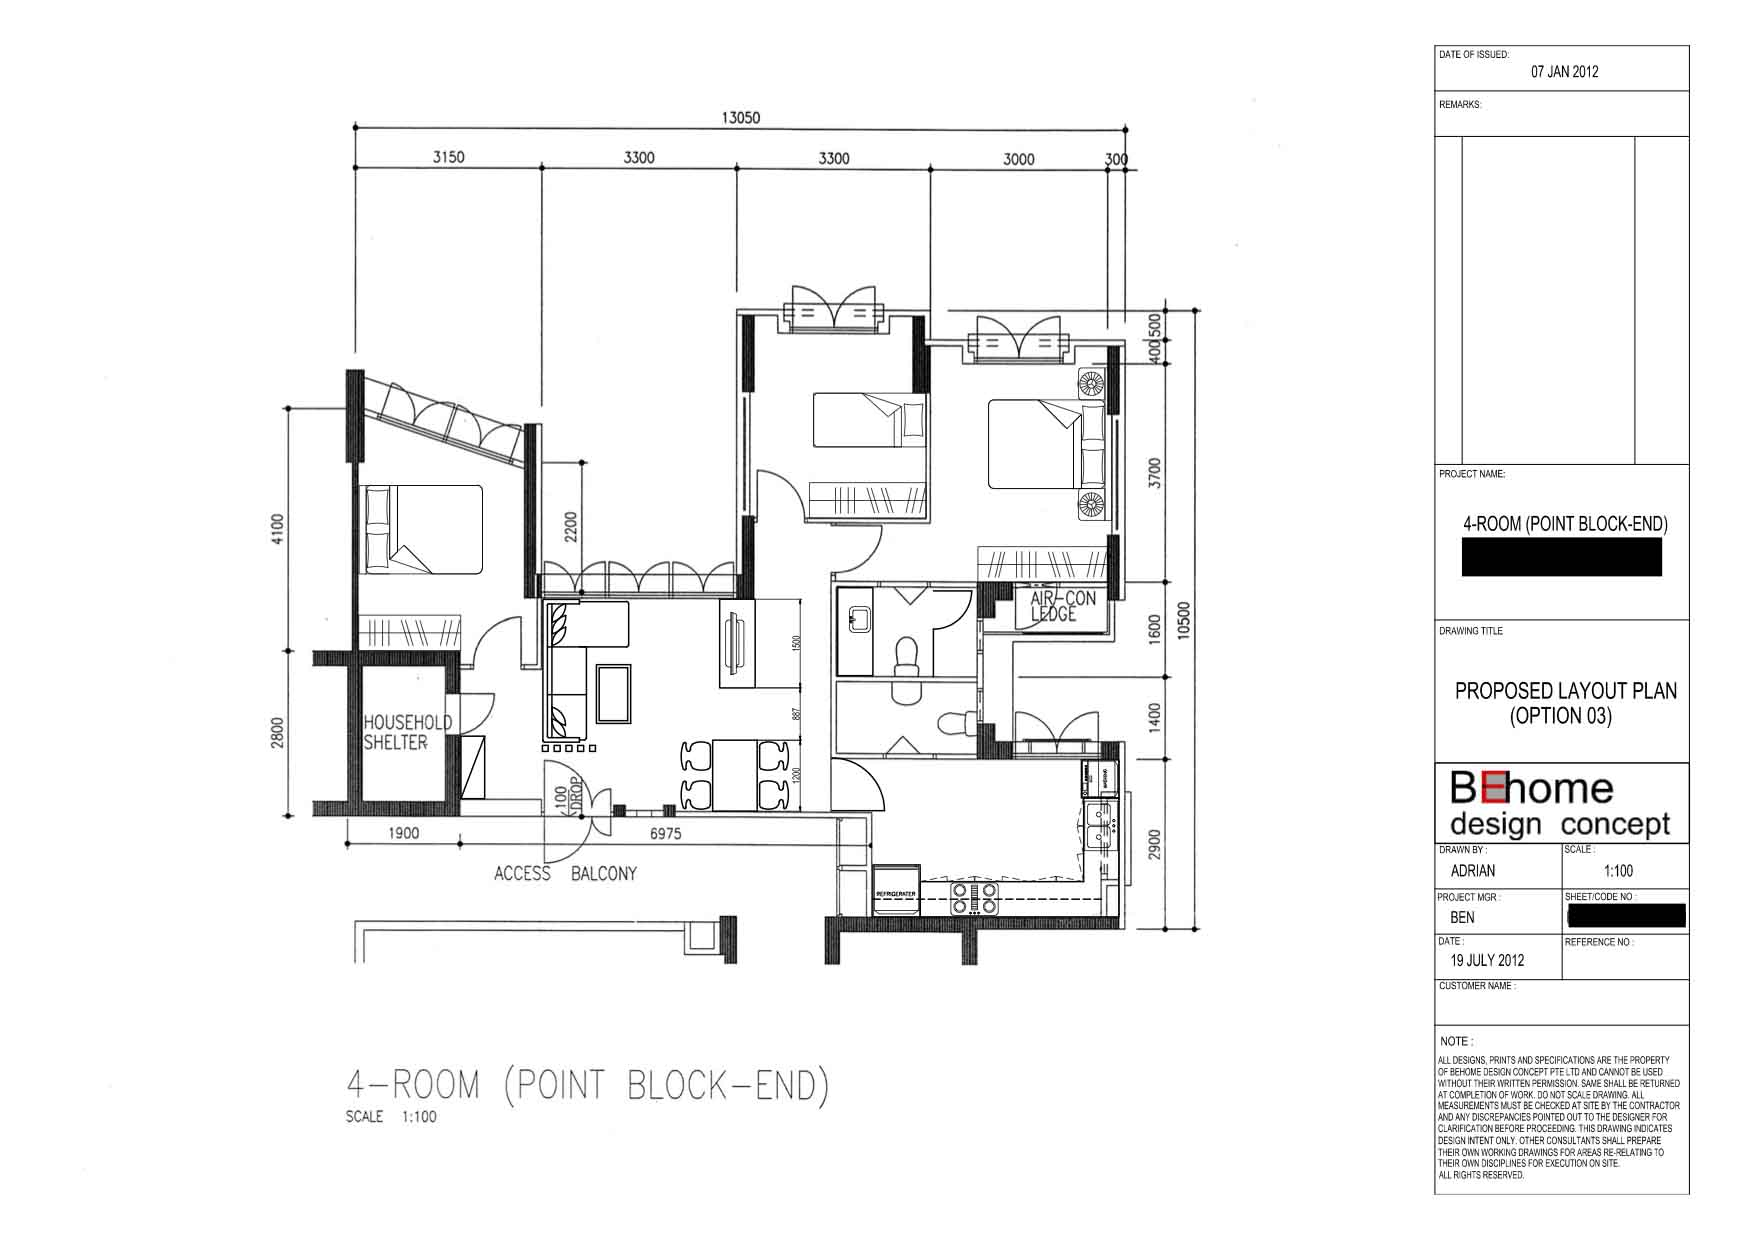 Punggol 4 room hdb renovation part 2 floor plan 3d for Drawing room layout design